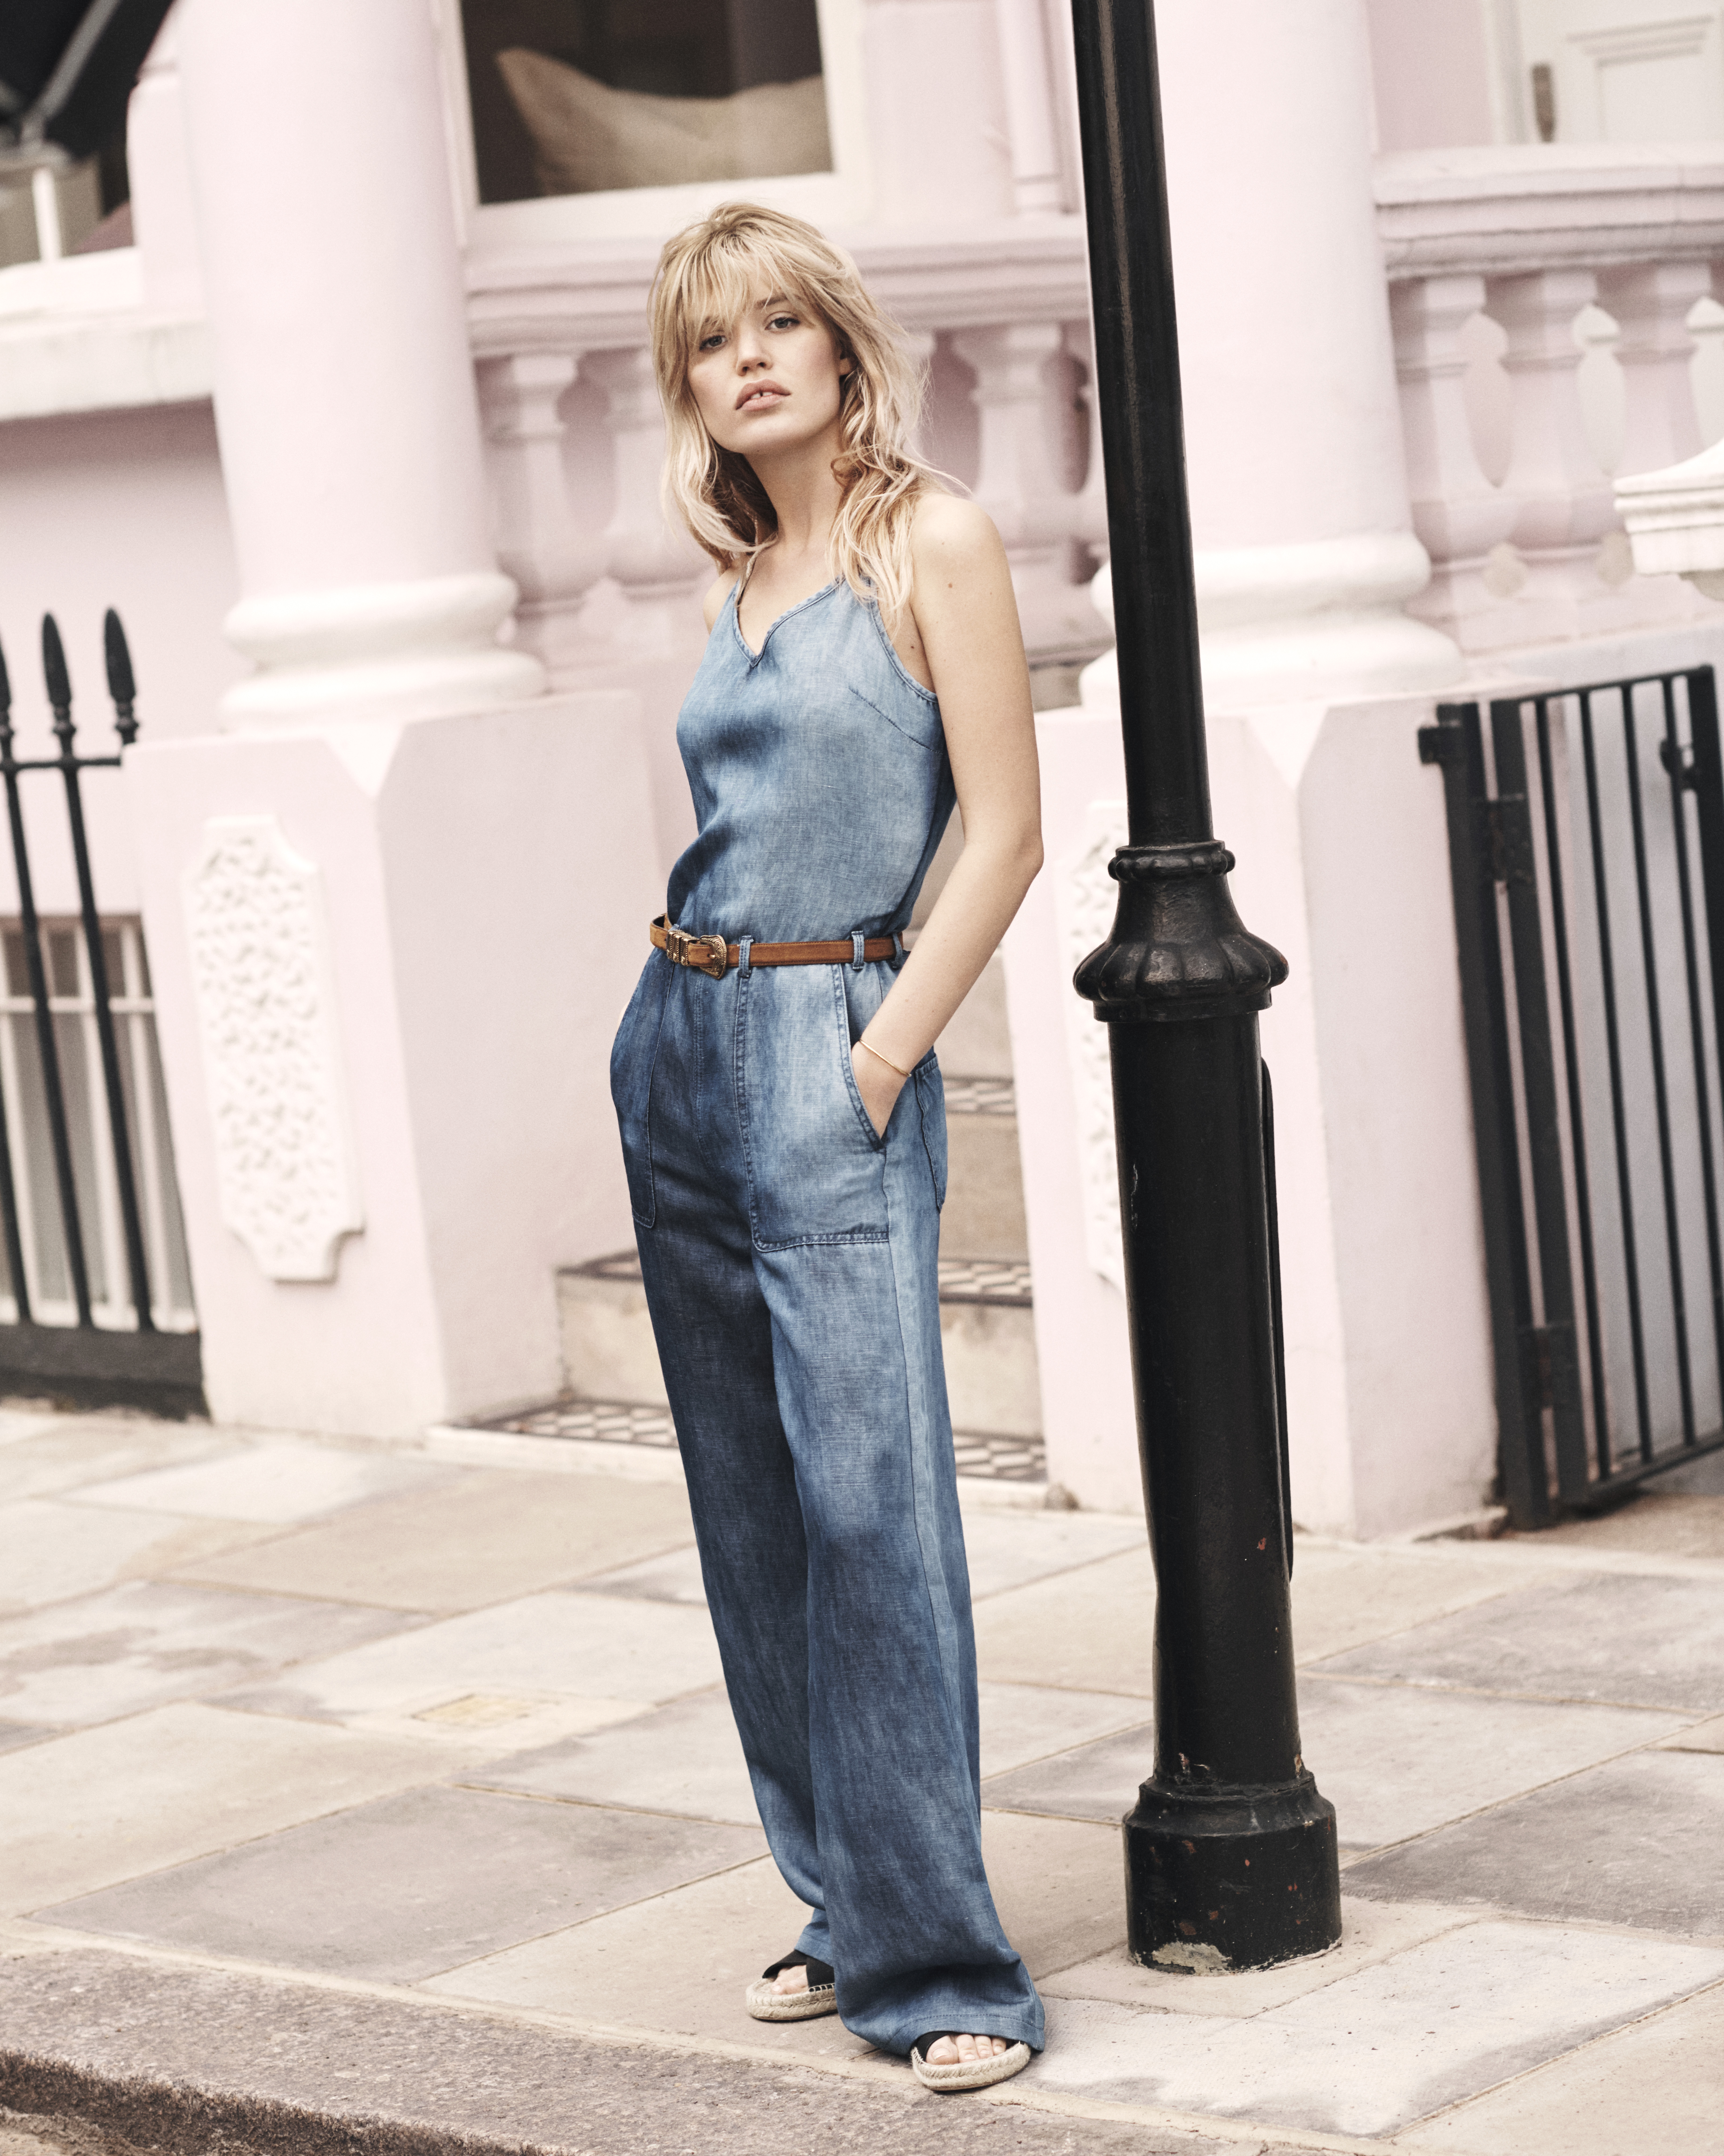 PEPE JEANS SS17 Campaign - WALK THIS WAY - 7